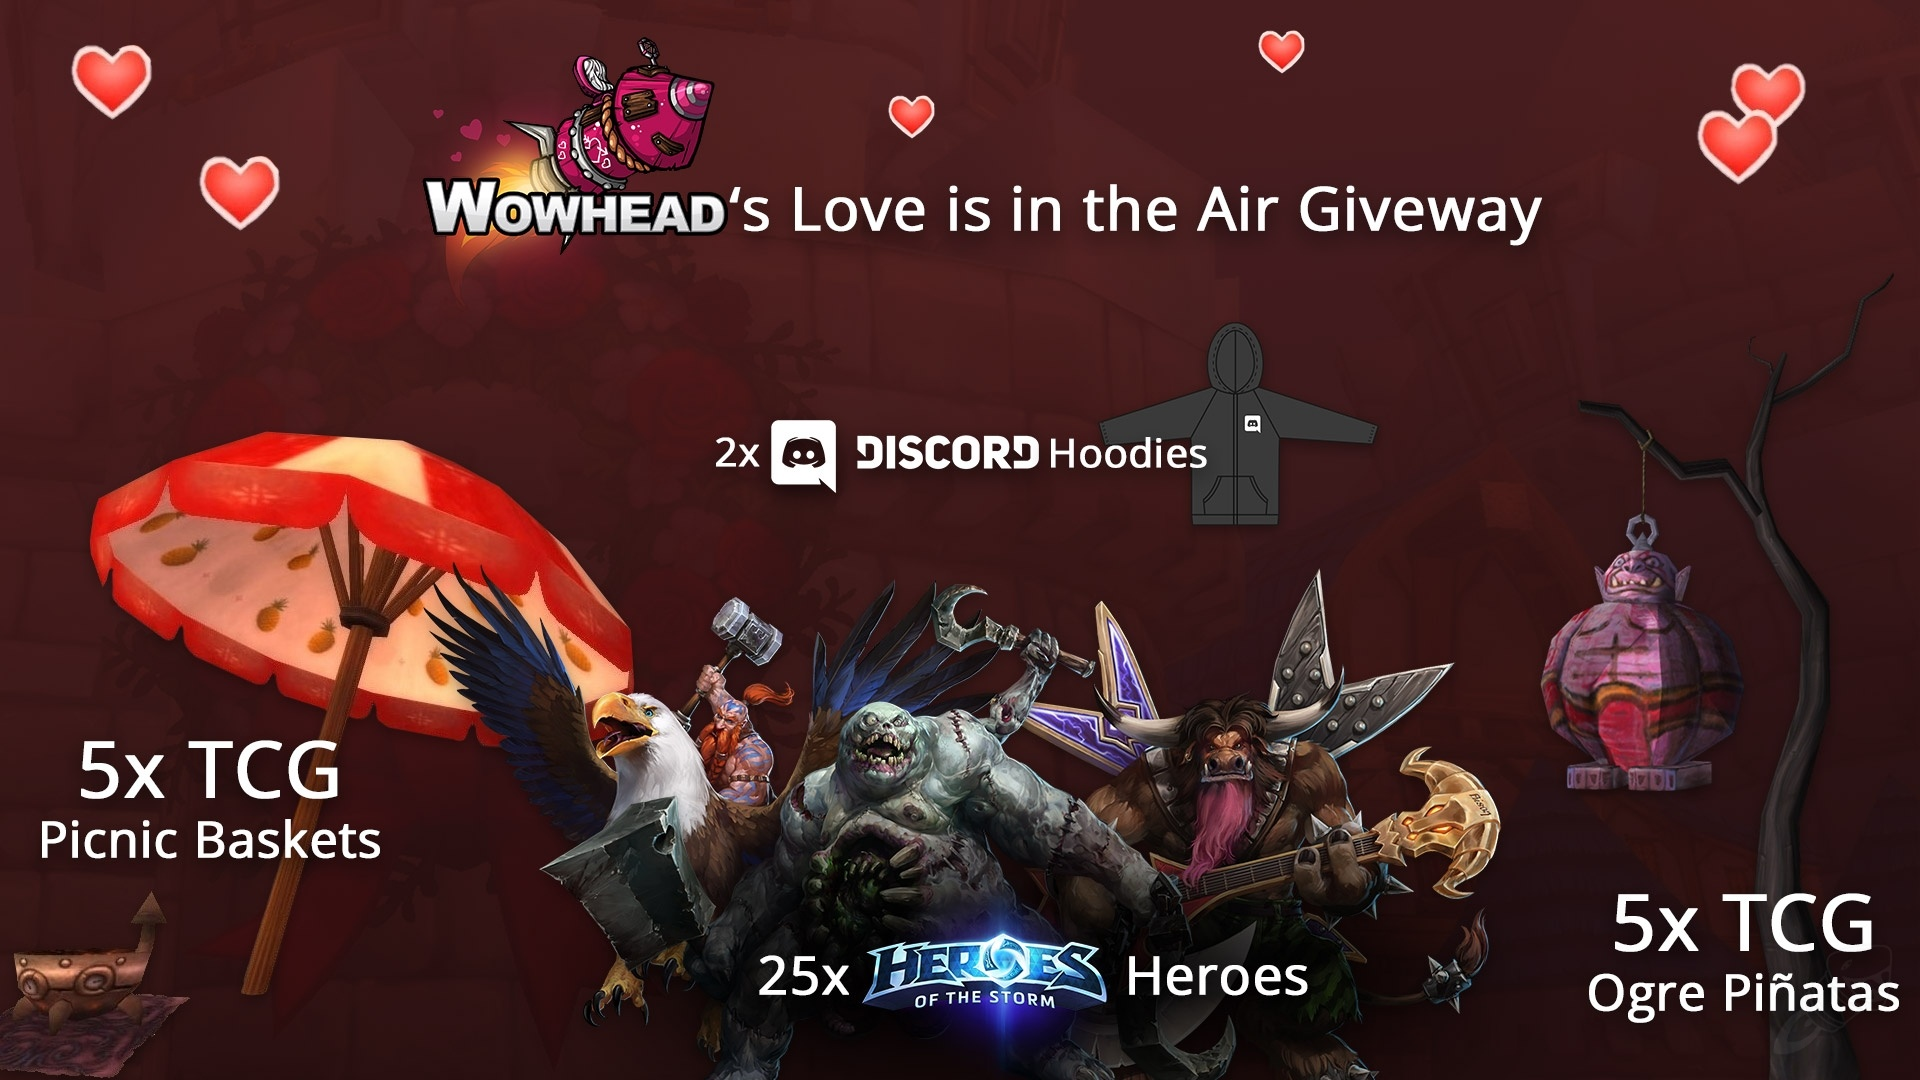 2017 Love is in the Air Giveaway and Warcraft Cookbooks